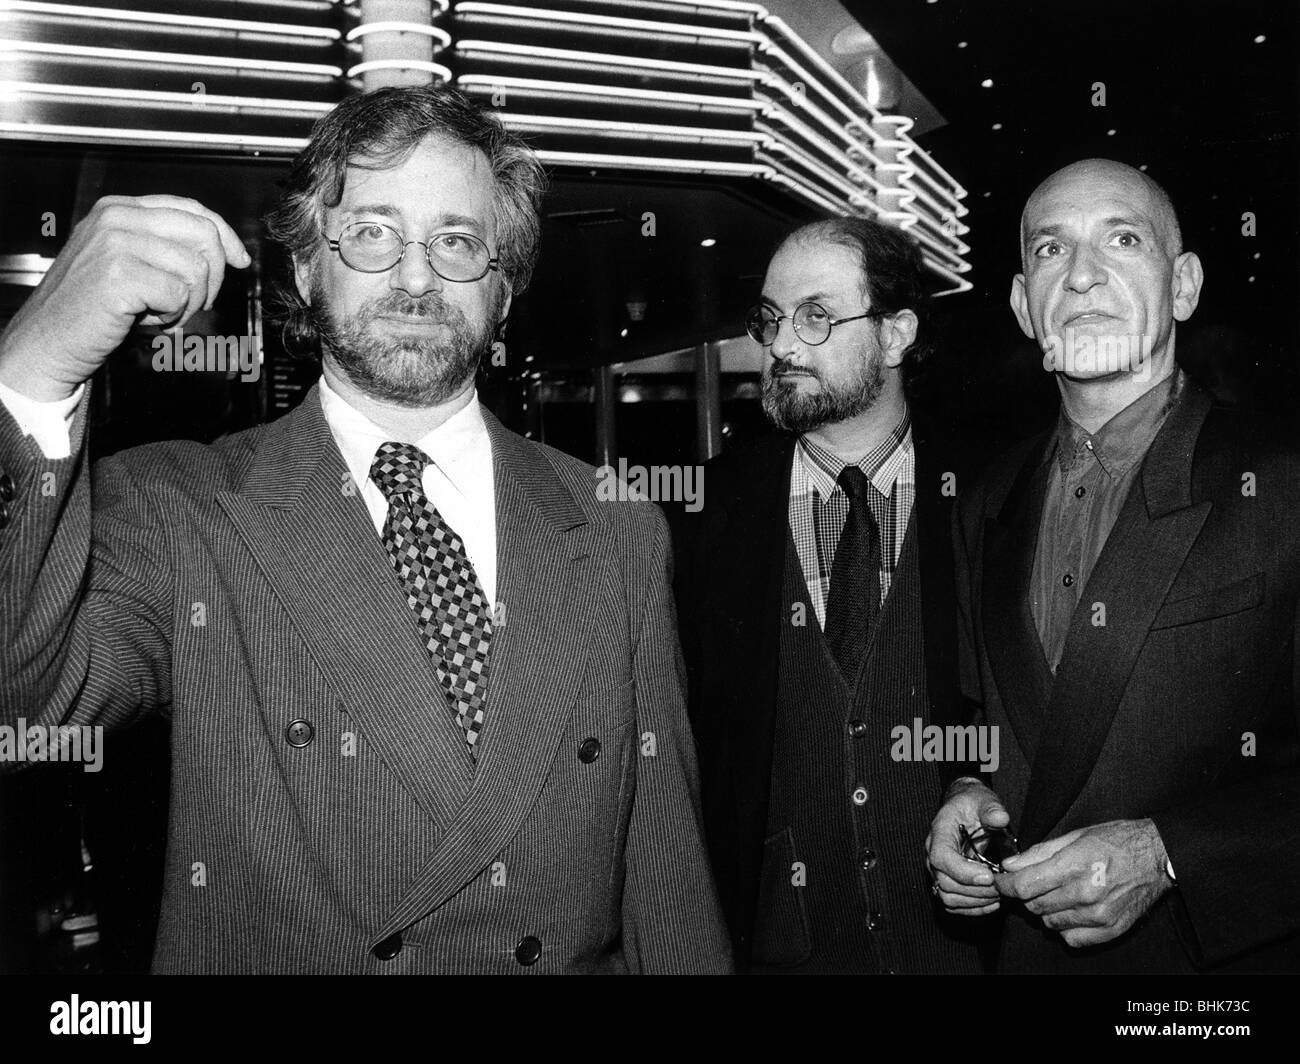 Steven Spielberg (1947- ), Salman Rushdie (1947- ), Writer, and Ben Kingsley (1943- ), Actor. Artist: John Nathan - Stock Image